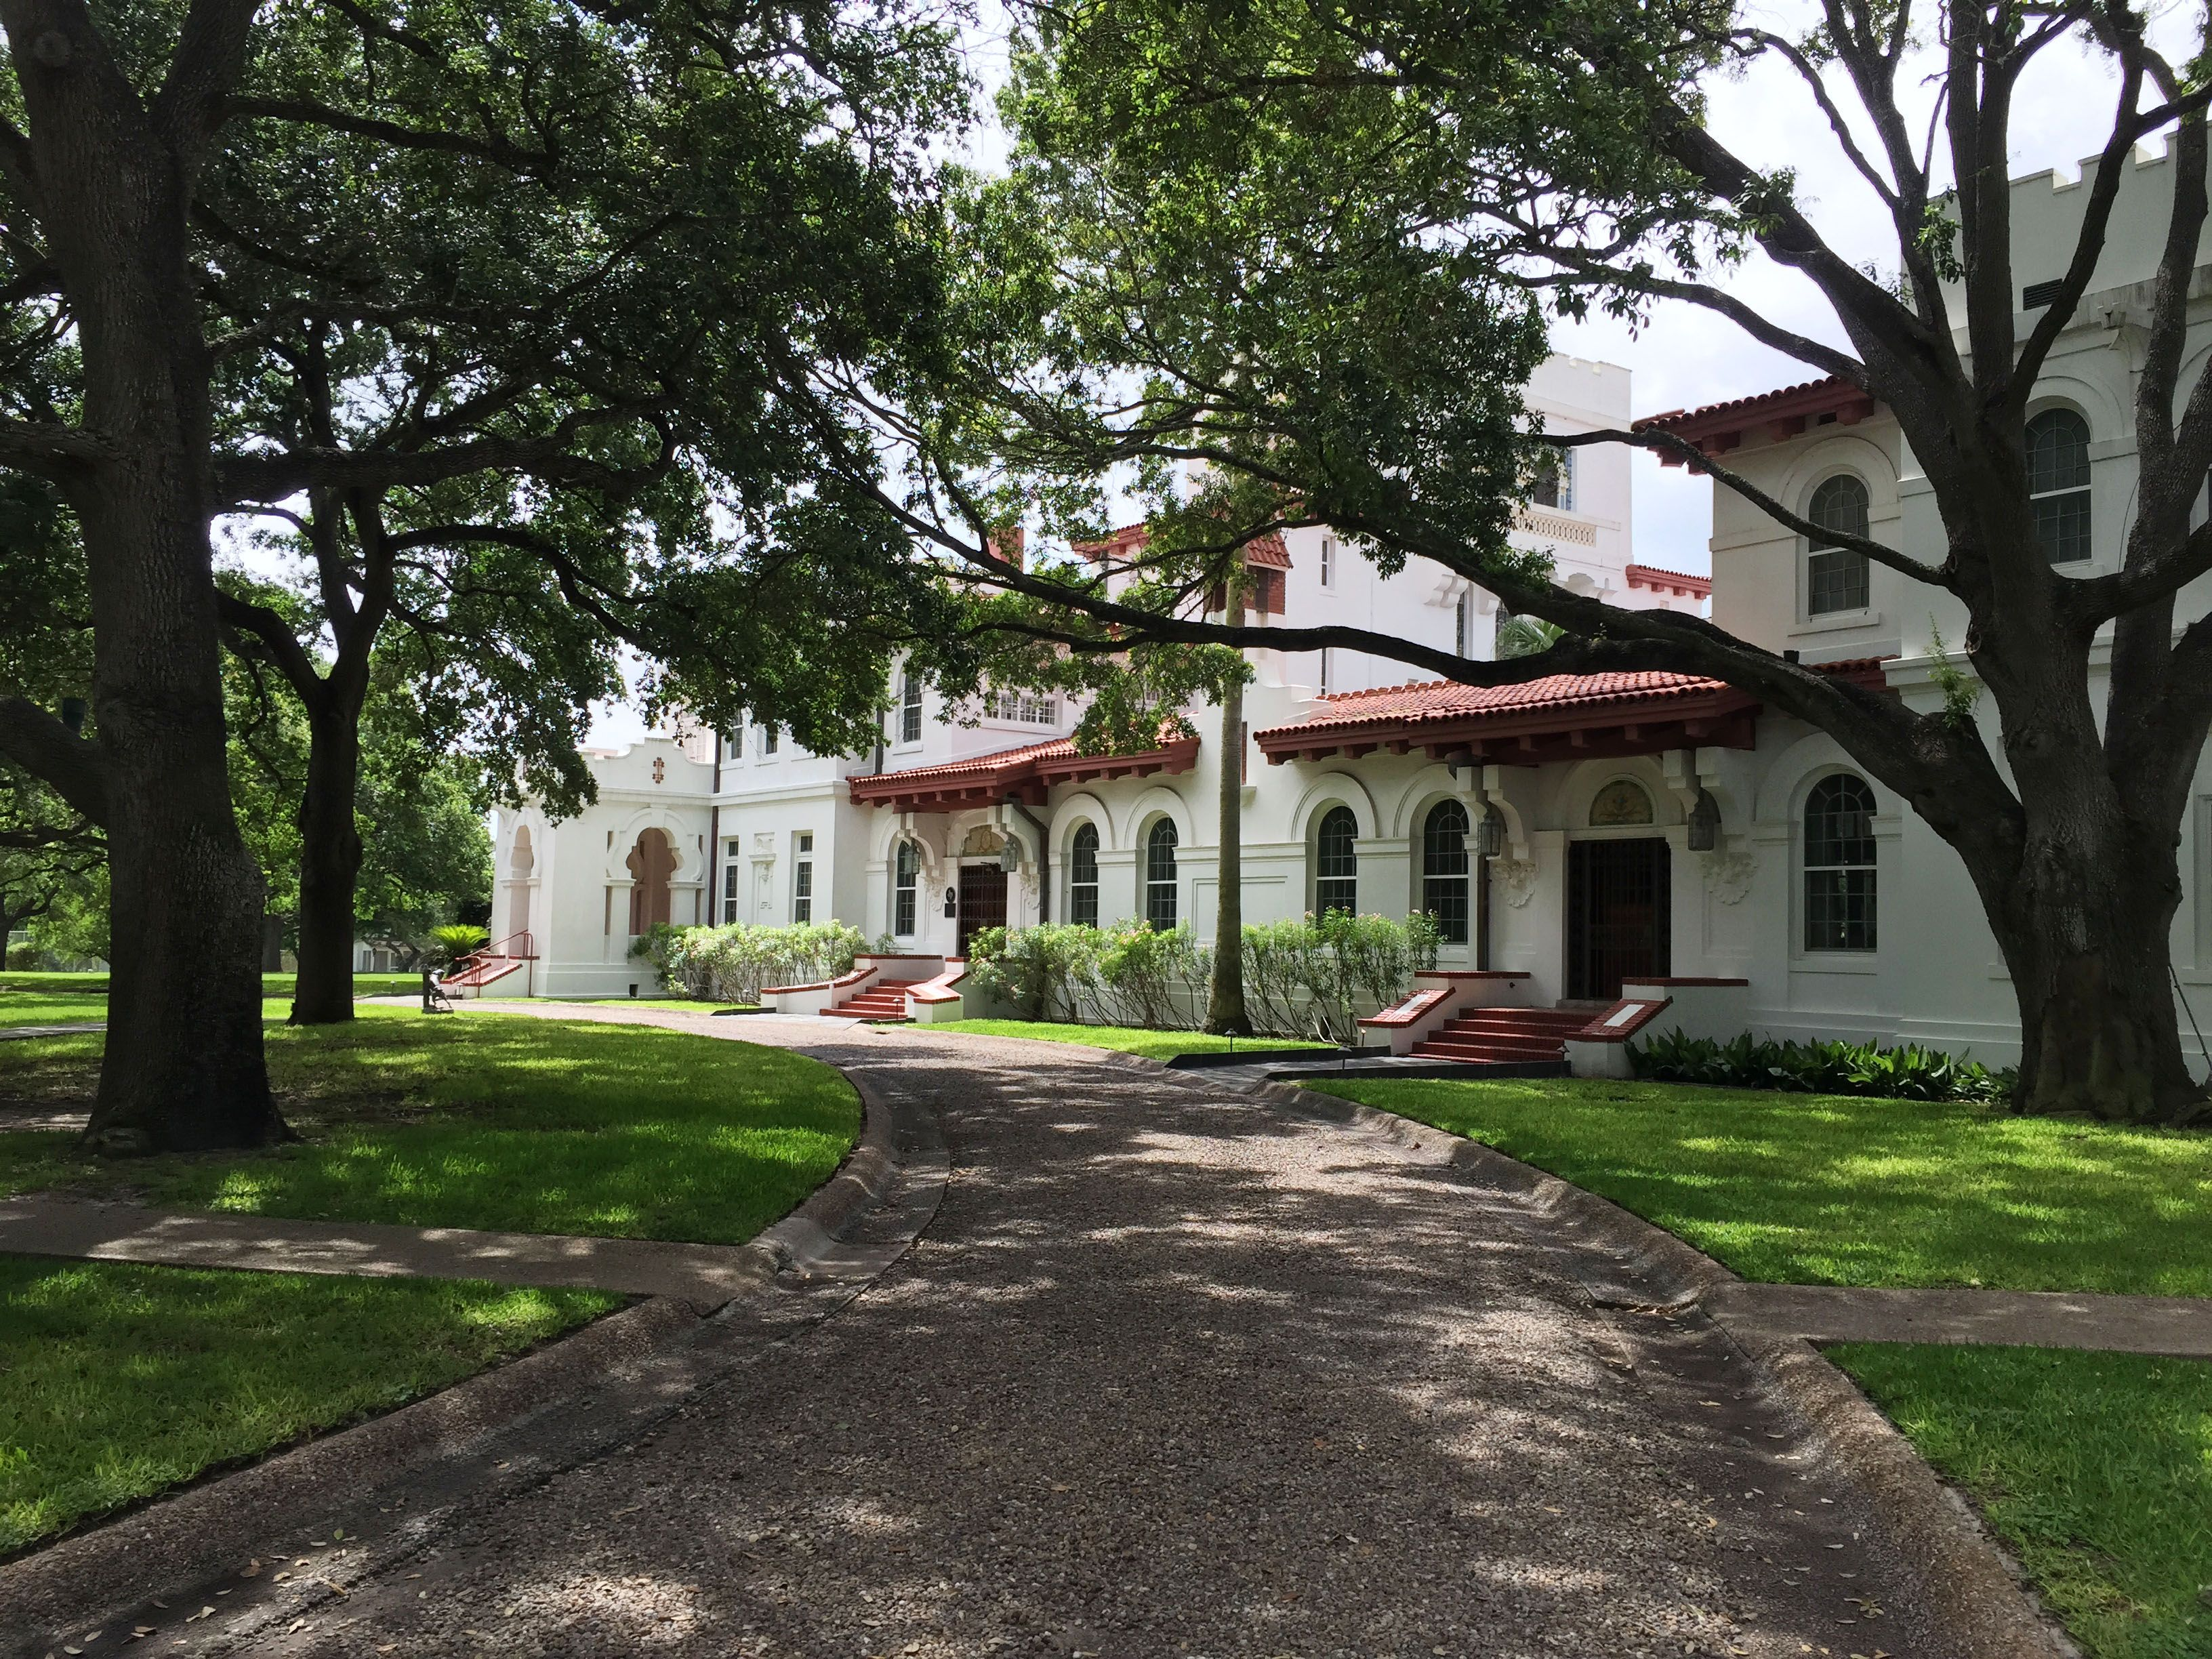 King Ranch Texas >> The King Ranch Main House In Kingsville Texas Texas Kingranch